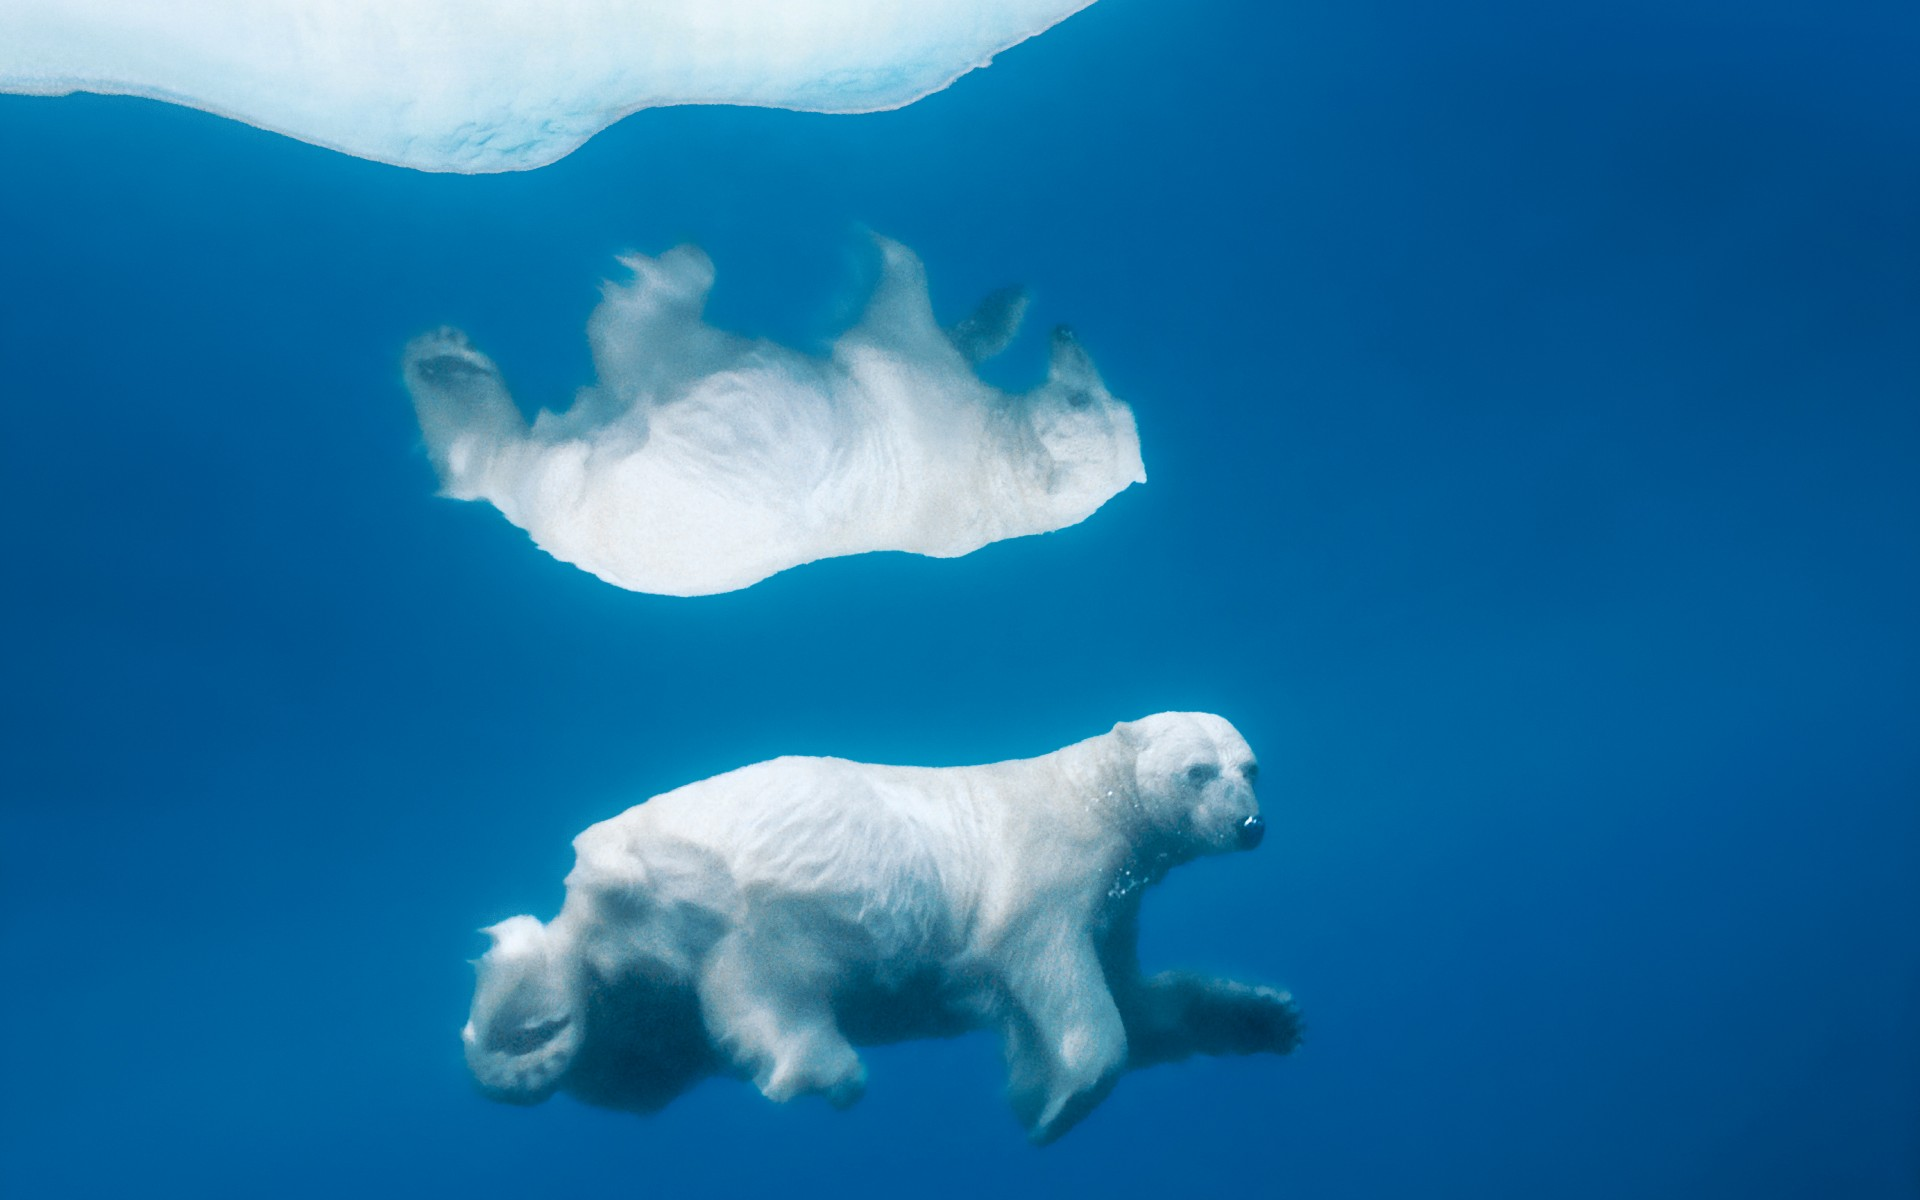 reflective polar bear - hd wallpapers